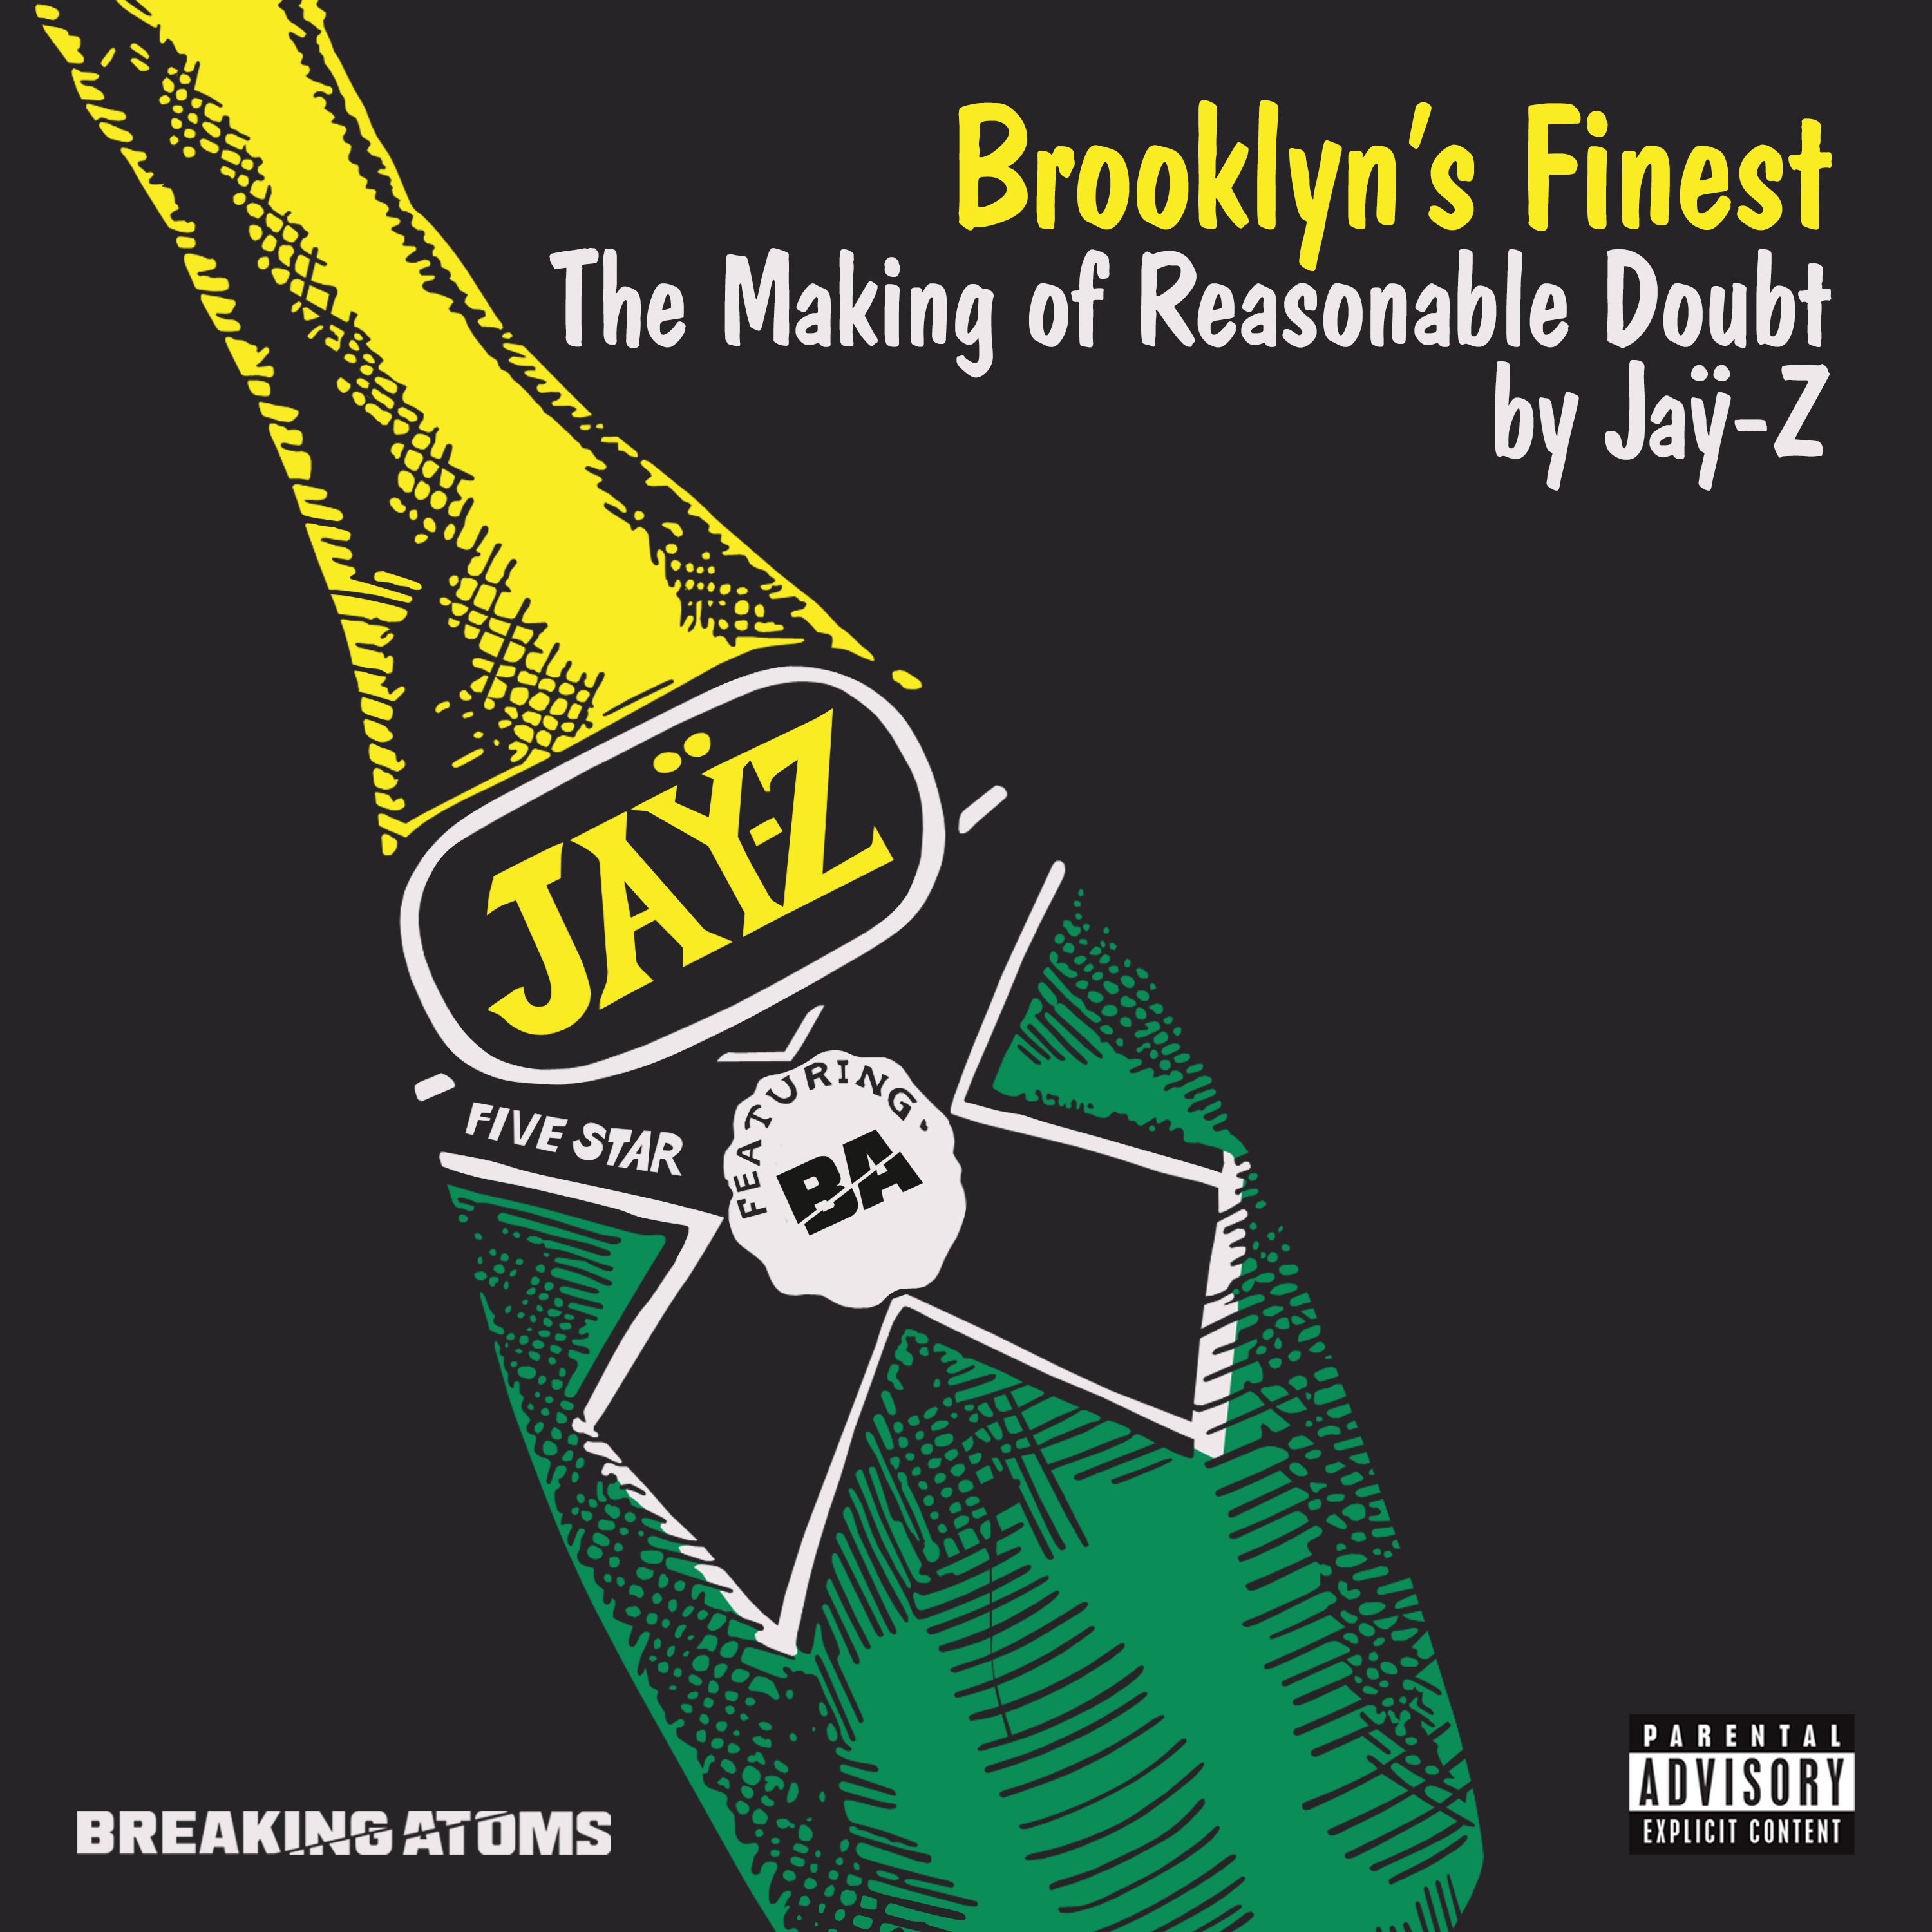 Episode 2: Politics As Usual | Brooklyn's Finest: The Making of Reasonable Doubt by Jay-Z